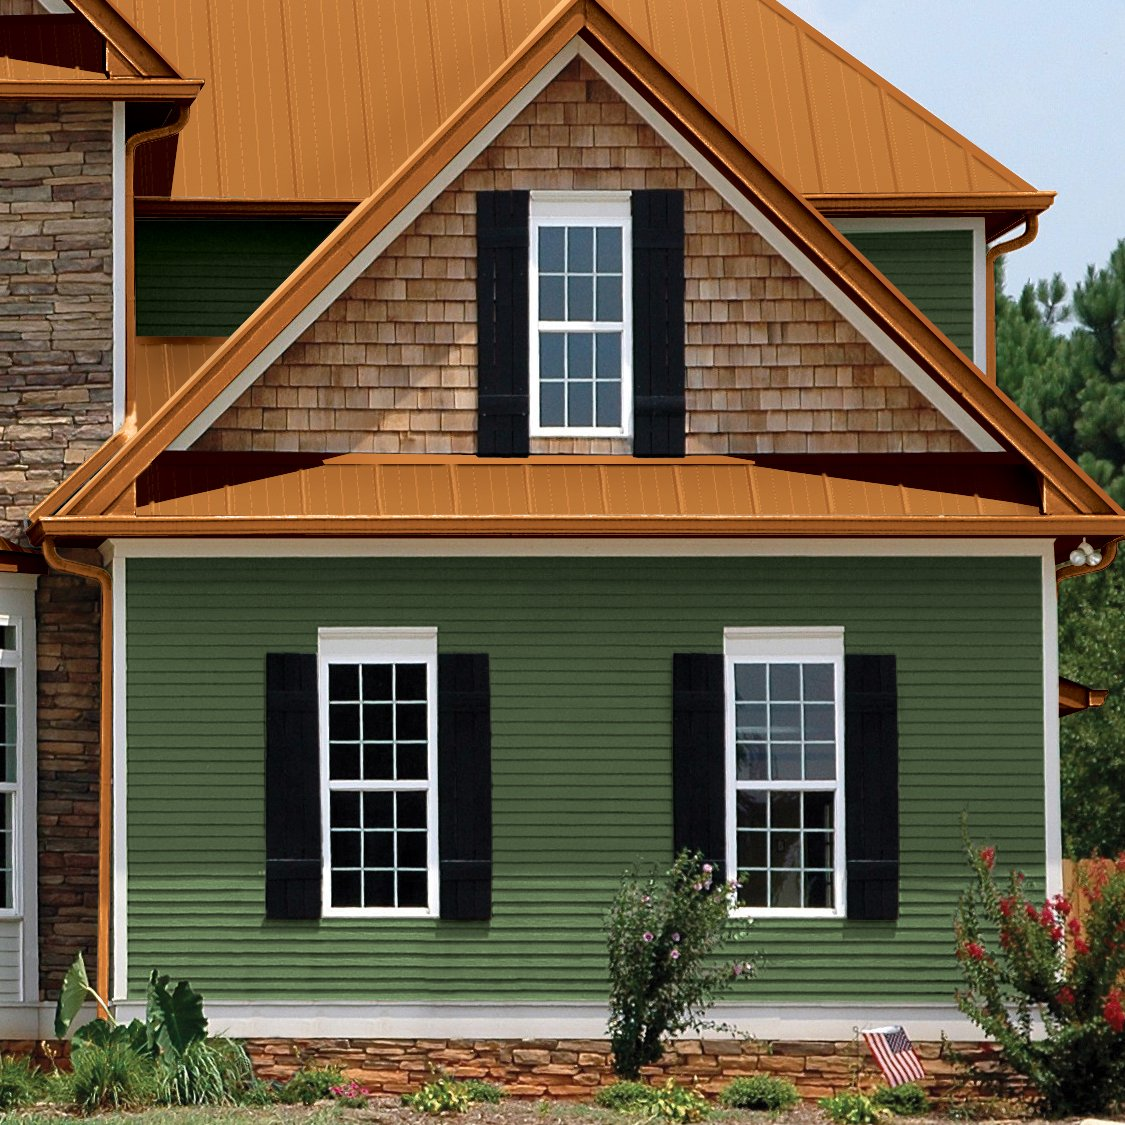 Virginia roofing siding company siding for New siding colors